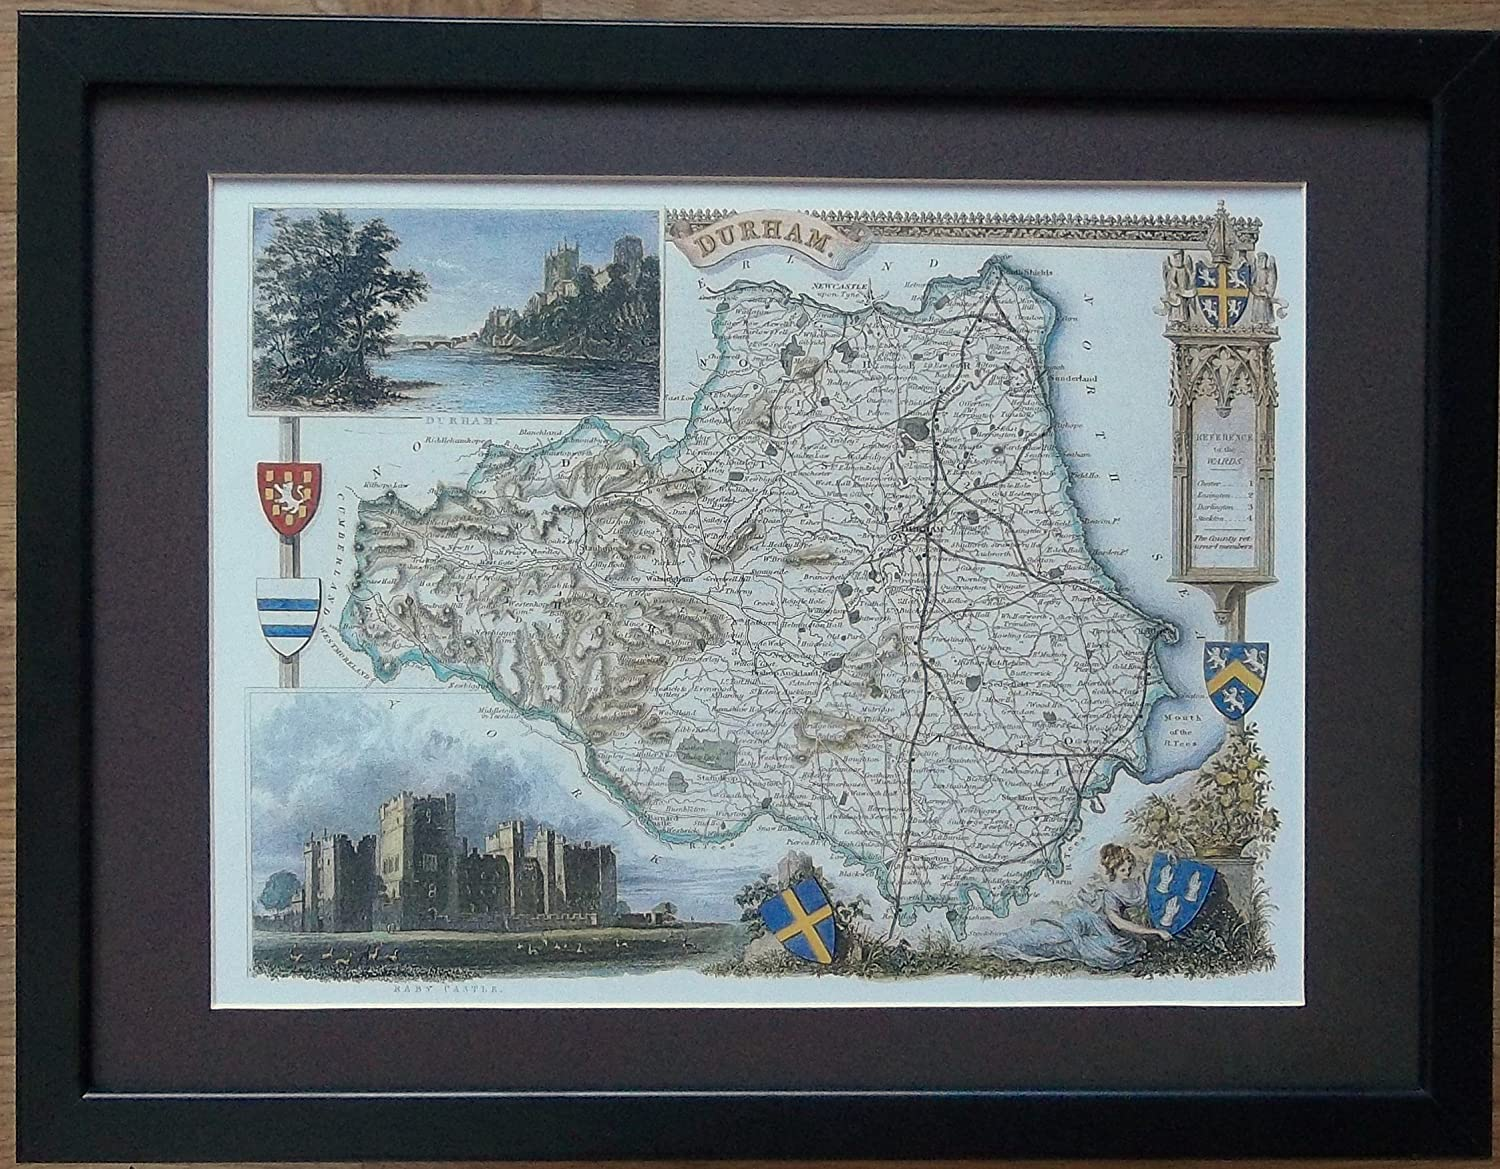 Framed and Mounted Old County Map - 12'' x 16'' frame, Old Durham Map framed print